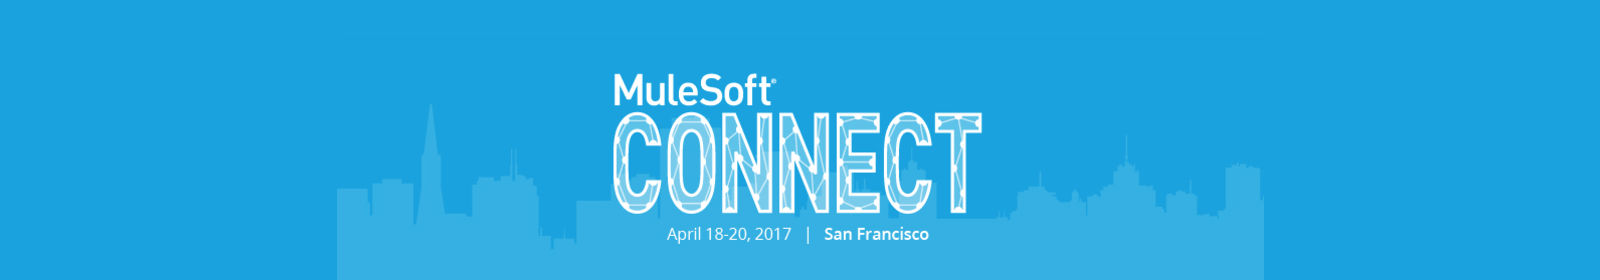 MuleSoft CONNECT 2017